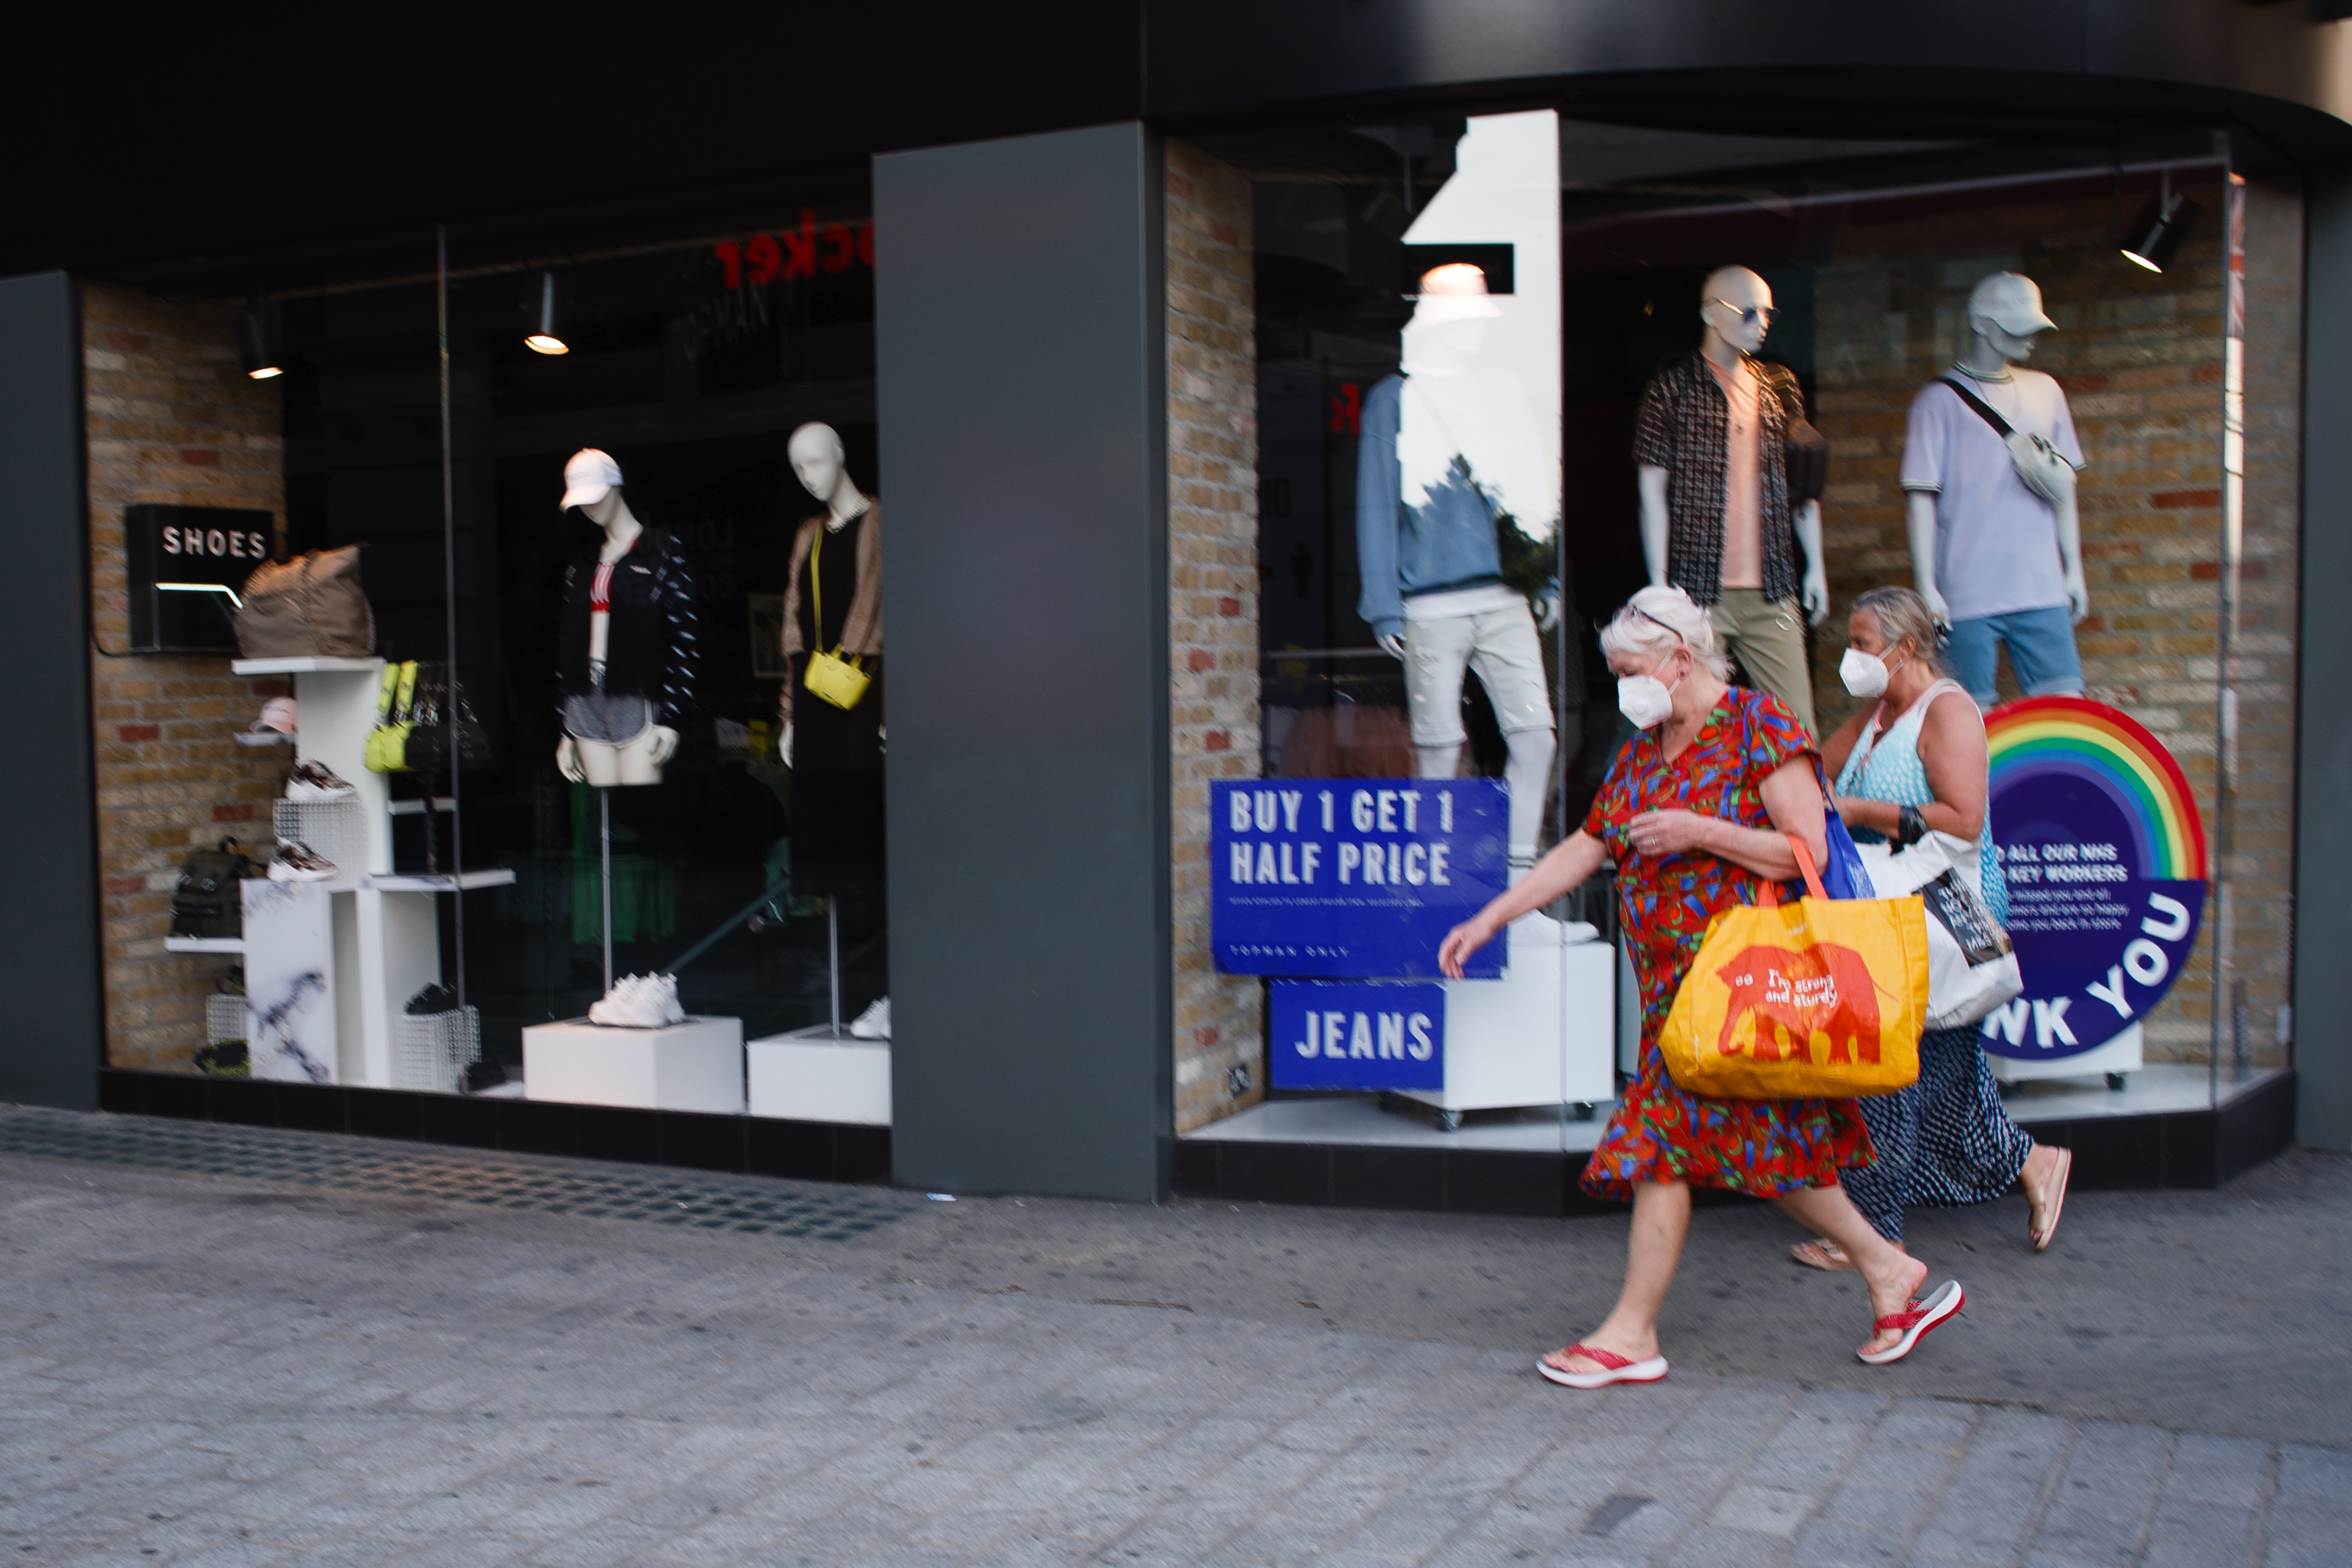 A pair of women wearing face masks turn onto Old Quebec Street from Oxford Street in London, England, on June 23, 2020. British Prime Minister Boris Johnson announced today that the next stage of lockdown easing in England would proceed on schedule, with pubs, restaurants, hotels, hairdressers, theatres, cinemas, museums, galleries, libraries, theme parks and zoos allowed to reopen from July 4. The two-metre social distancing rule is also to be halved from the same date, with people encouraged to take additional mitigation actions, such as wearing face coverings, when close together. The change, to what is being dubbed 'one-metre plus', is seen as key to the survival of the hospitality sector. (Photo by David Cliff/NurPhoto via Getty Images)